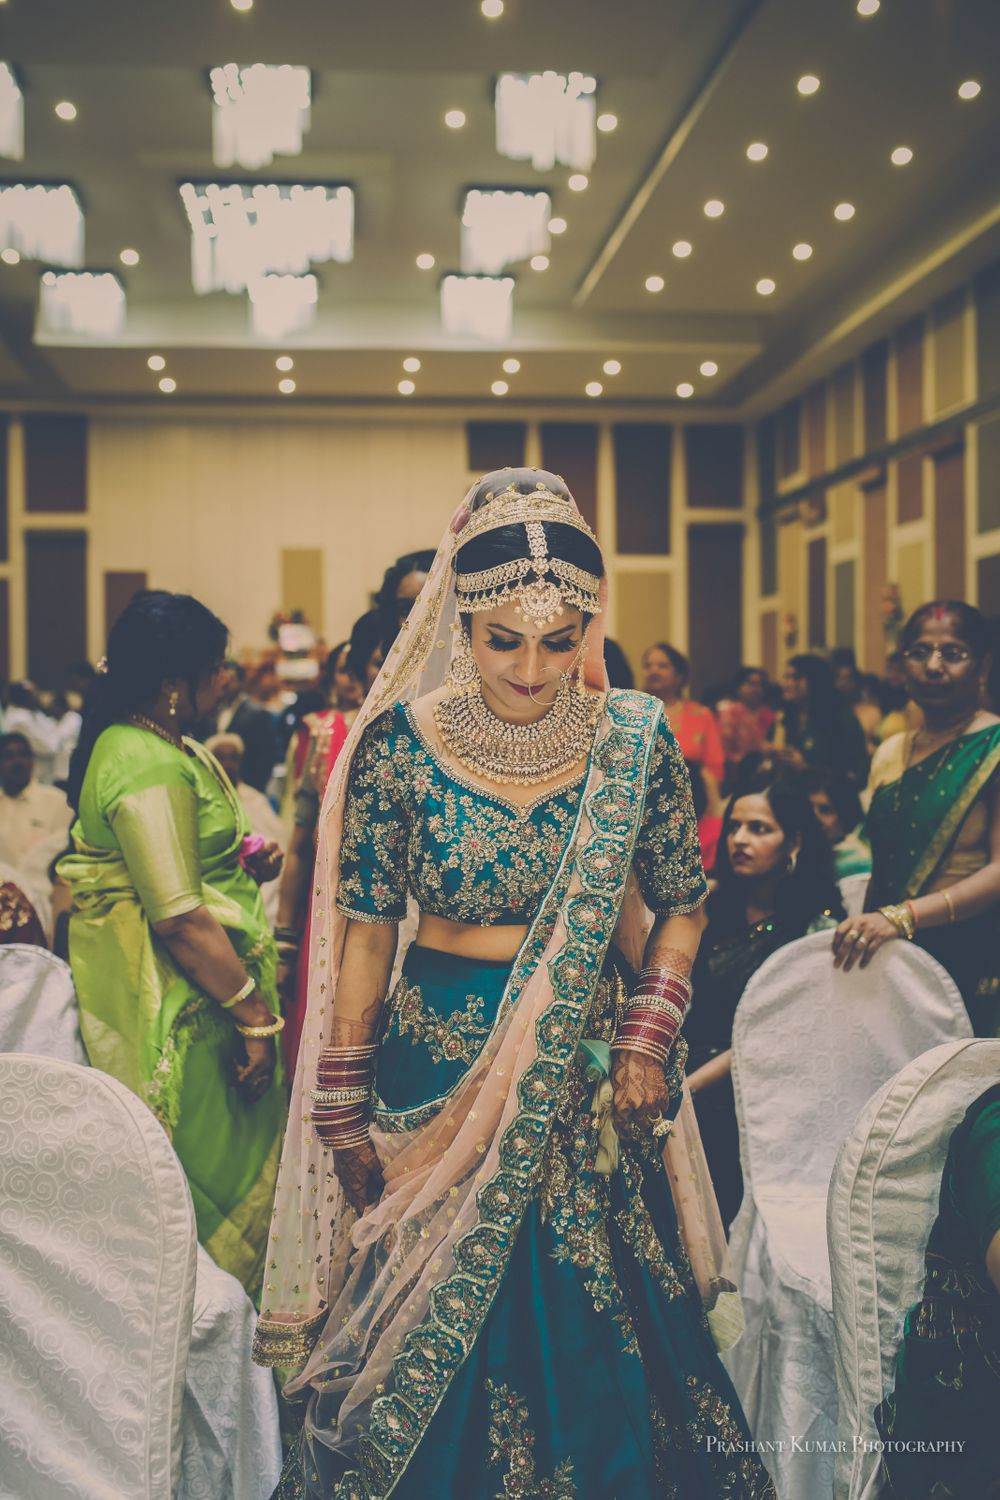 Photo From Megha + Keshav - By Prashant Kumar Photography